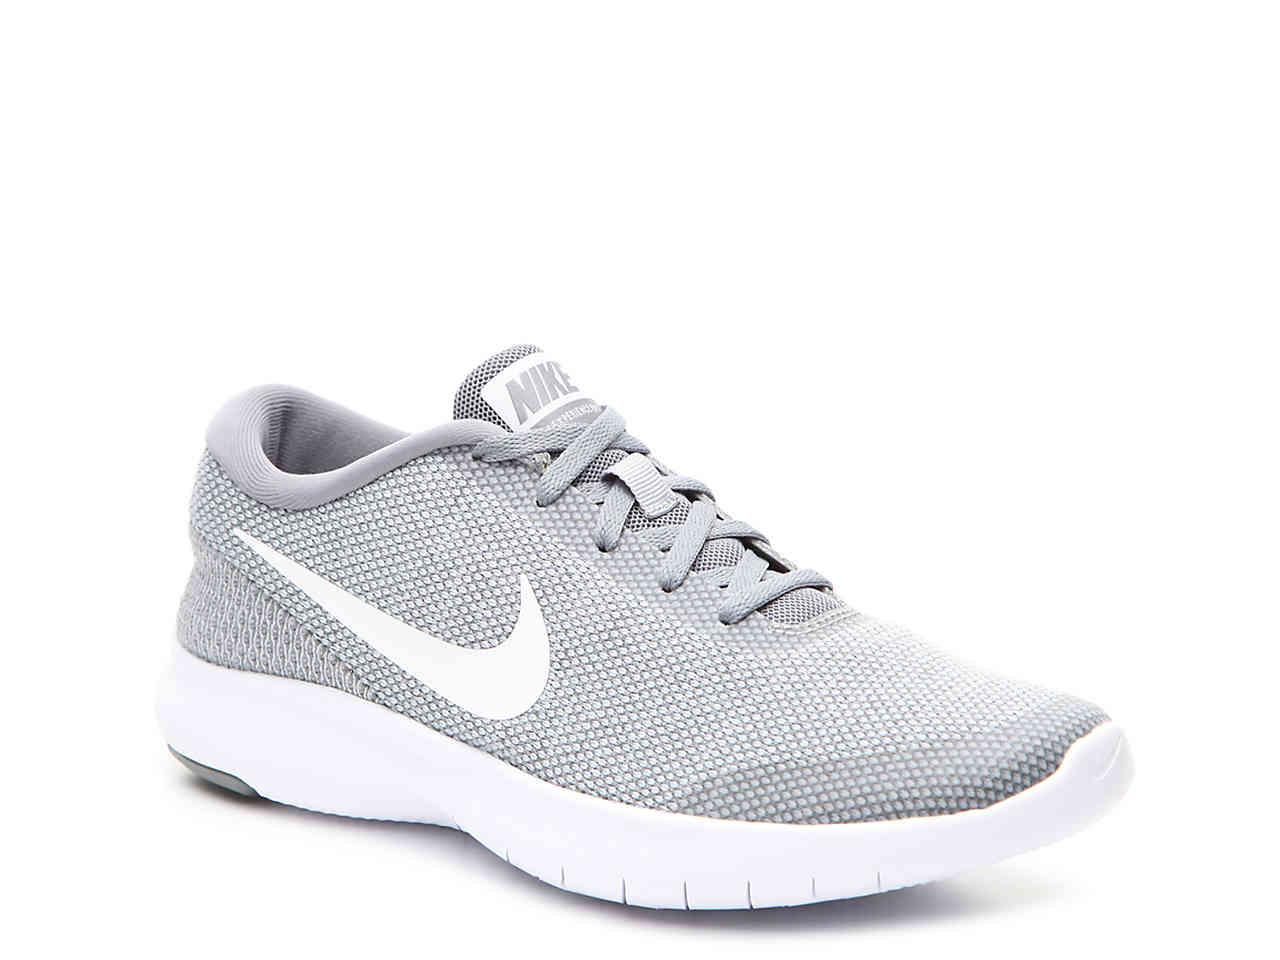 buy online 5f884 2ef8a sweden dsw nike air max thea ddb80 20528  germany lyst nike flex experience  rn 7 lightweight running shoe in white 067a8 40ef0